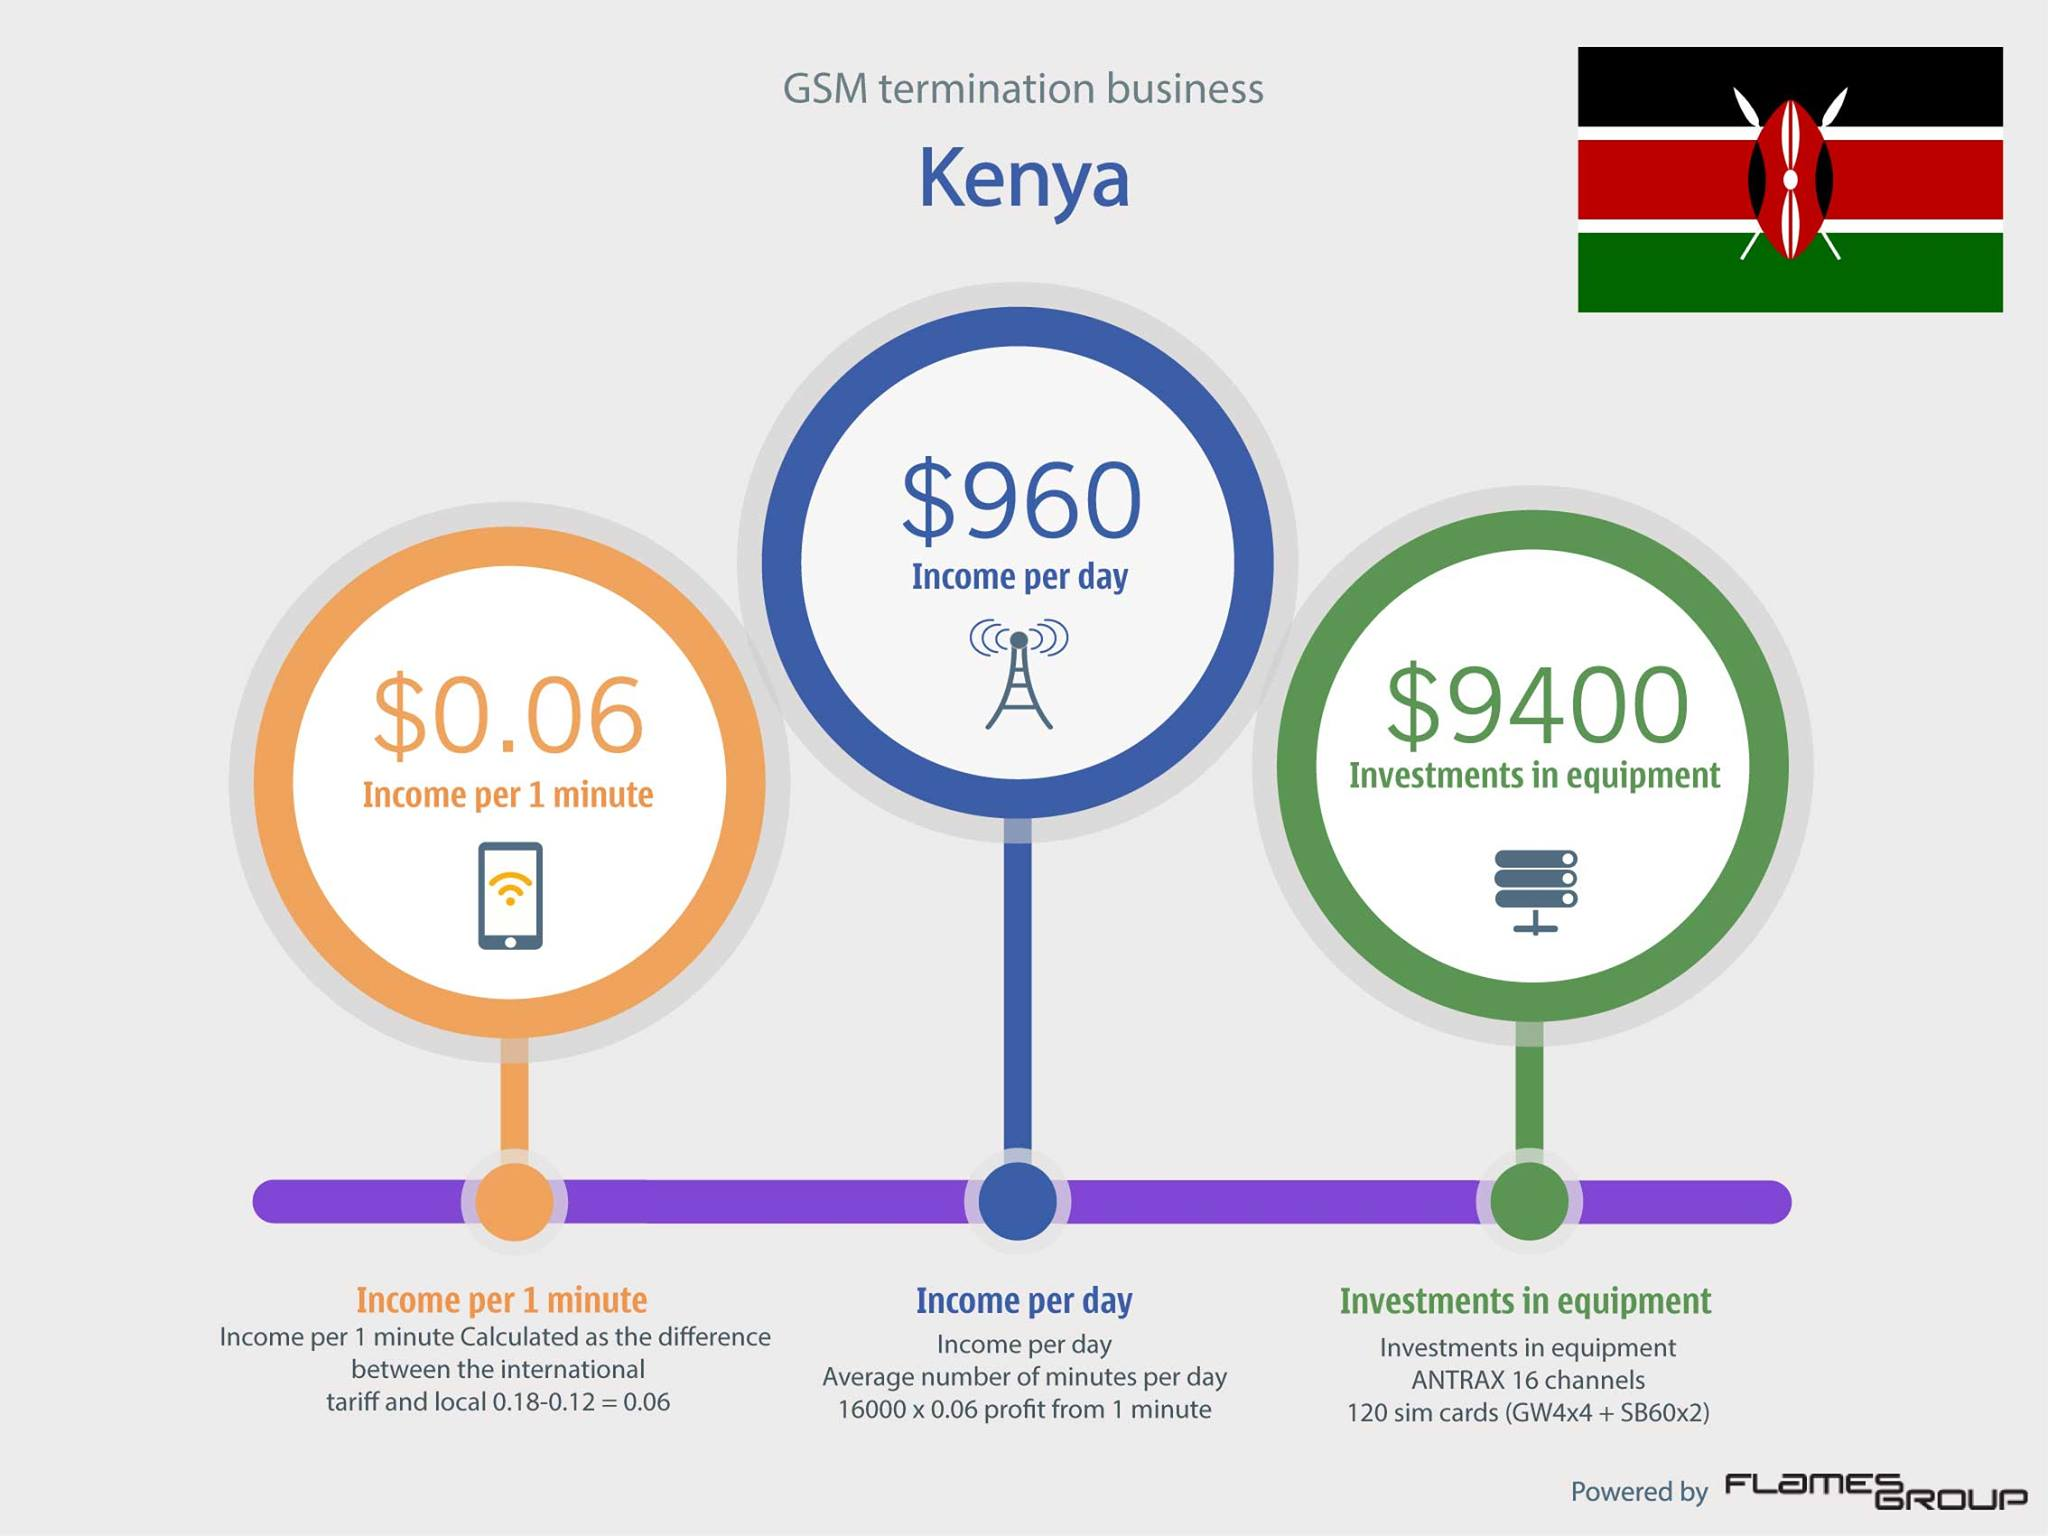 GSM termination in Kenya - Infographic ANTRAX